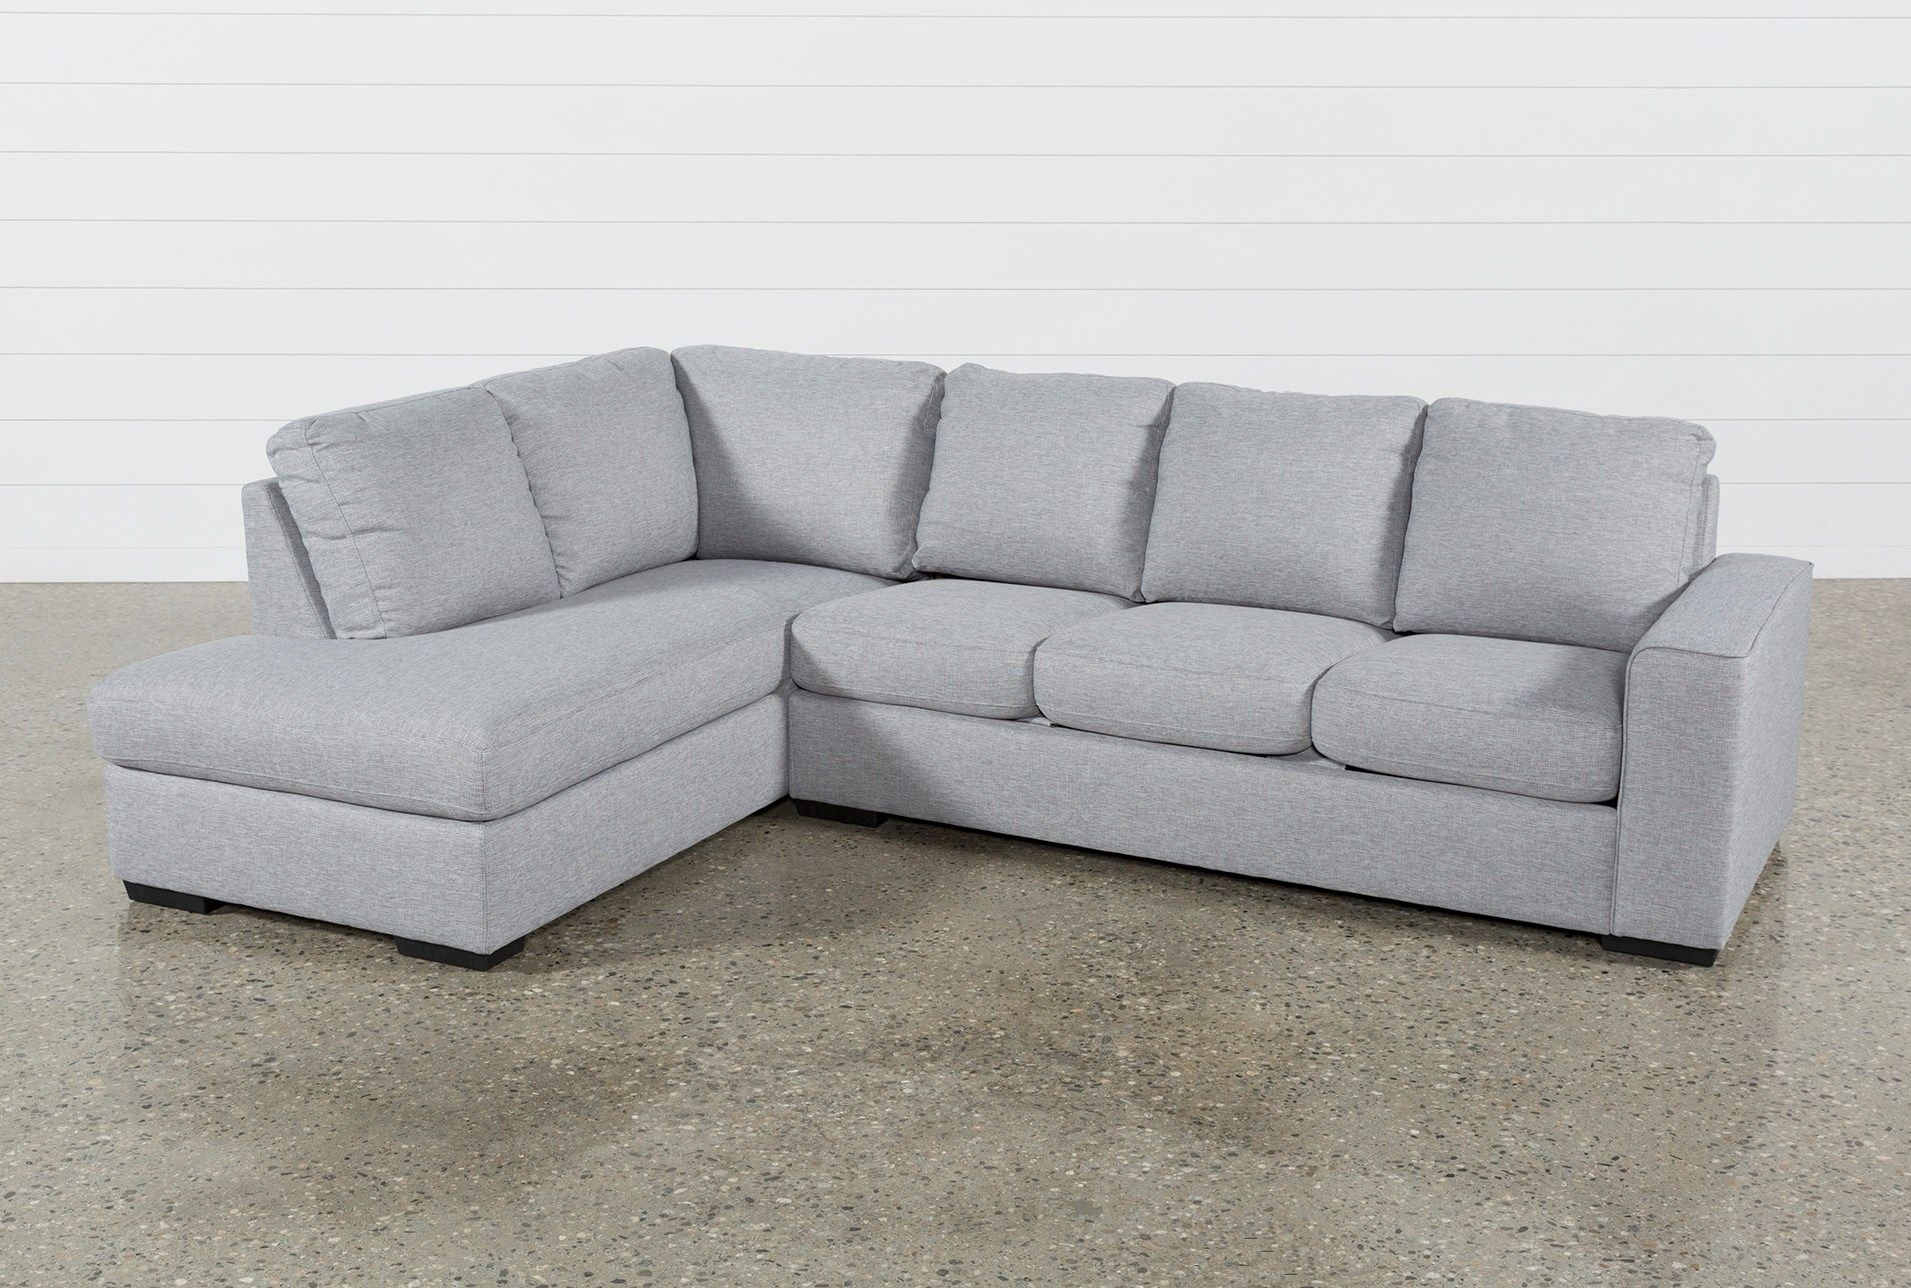 Lucy Grey 2 Piece Sectional W/laf Chaise | Tx House | Pinterest inside Lucy Dark Grey 2 Piece Sleeper Sectionals With Raf Chaise (Image 19 of 30)